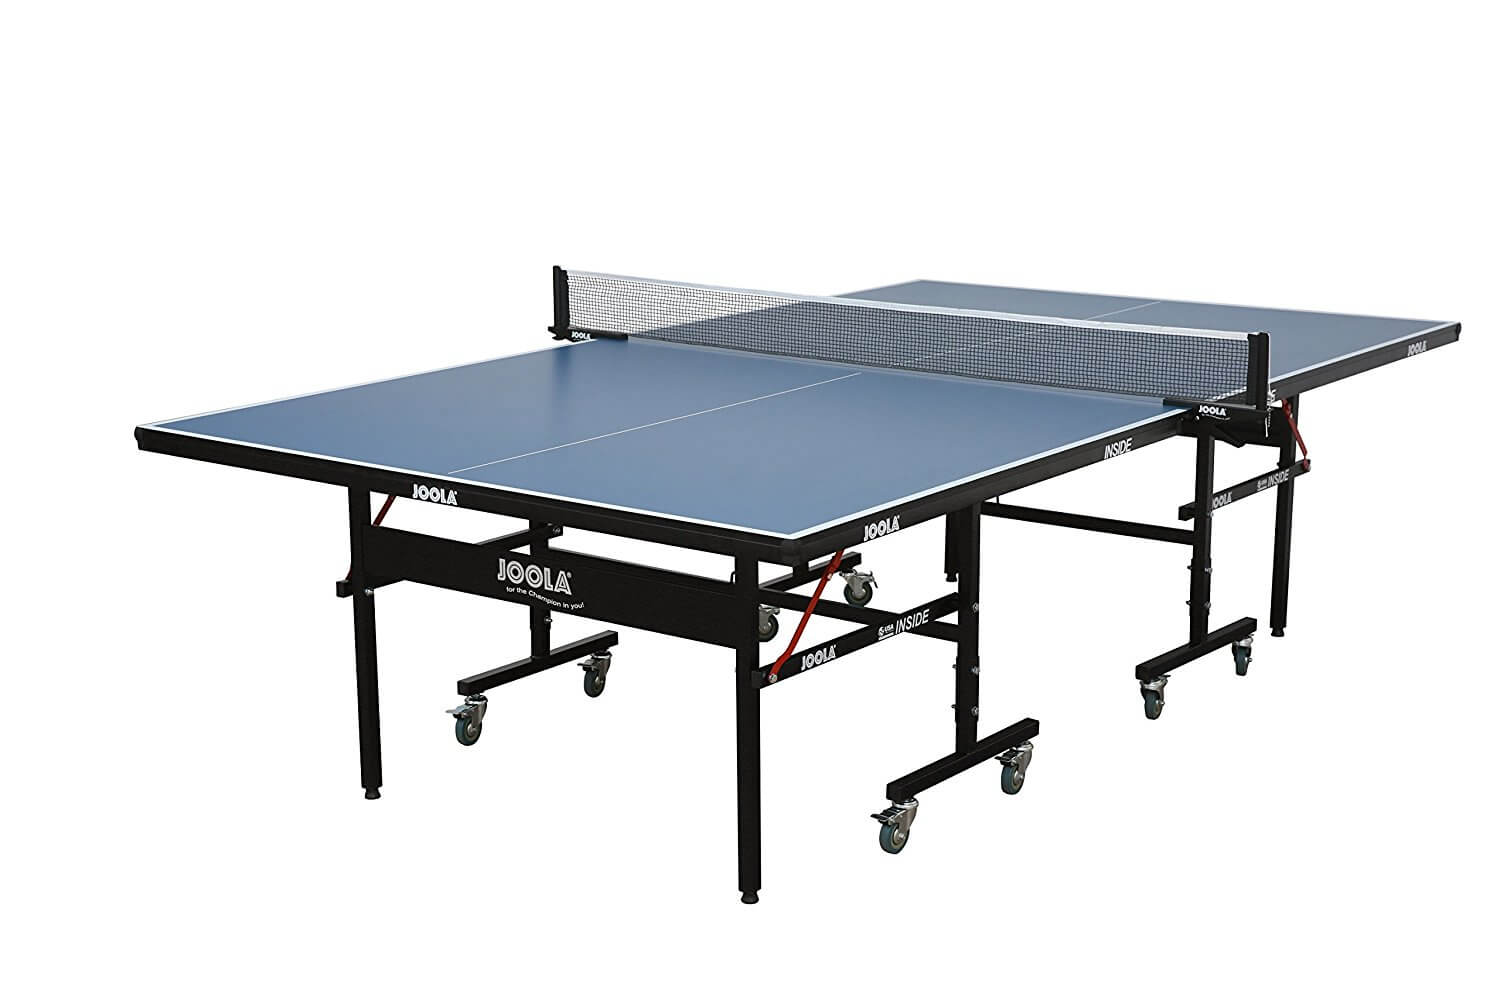 Best Table Tennis Table under $500